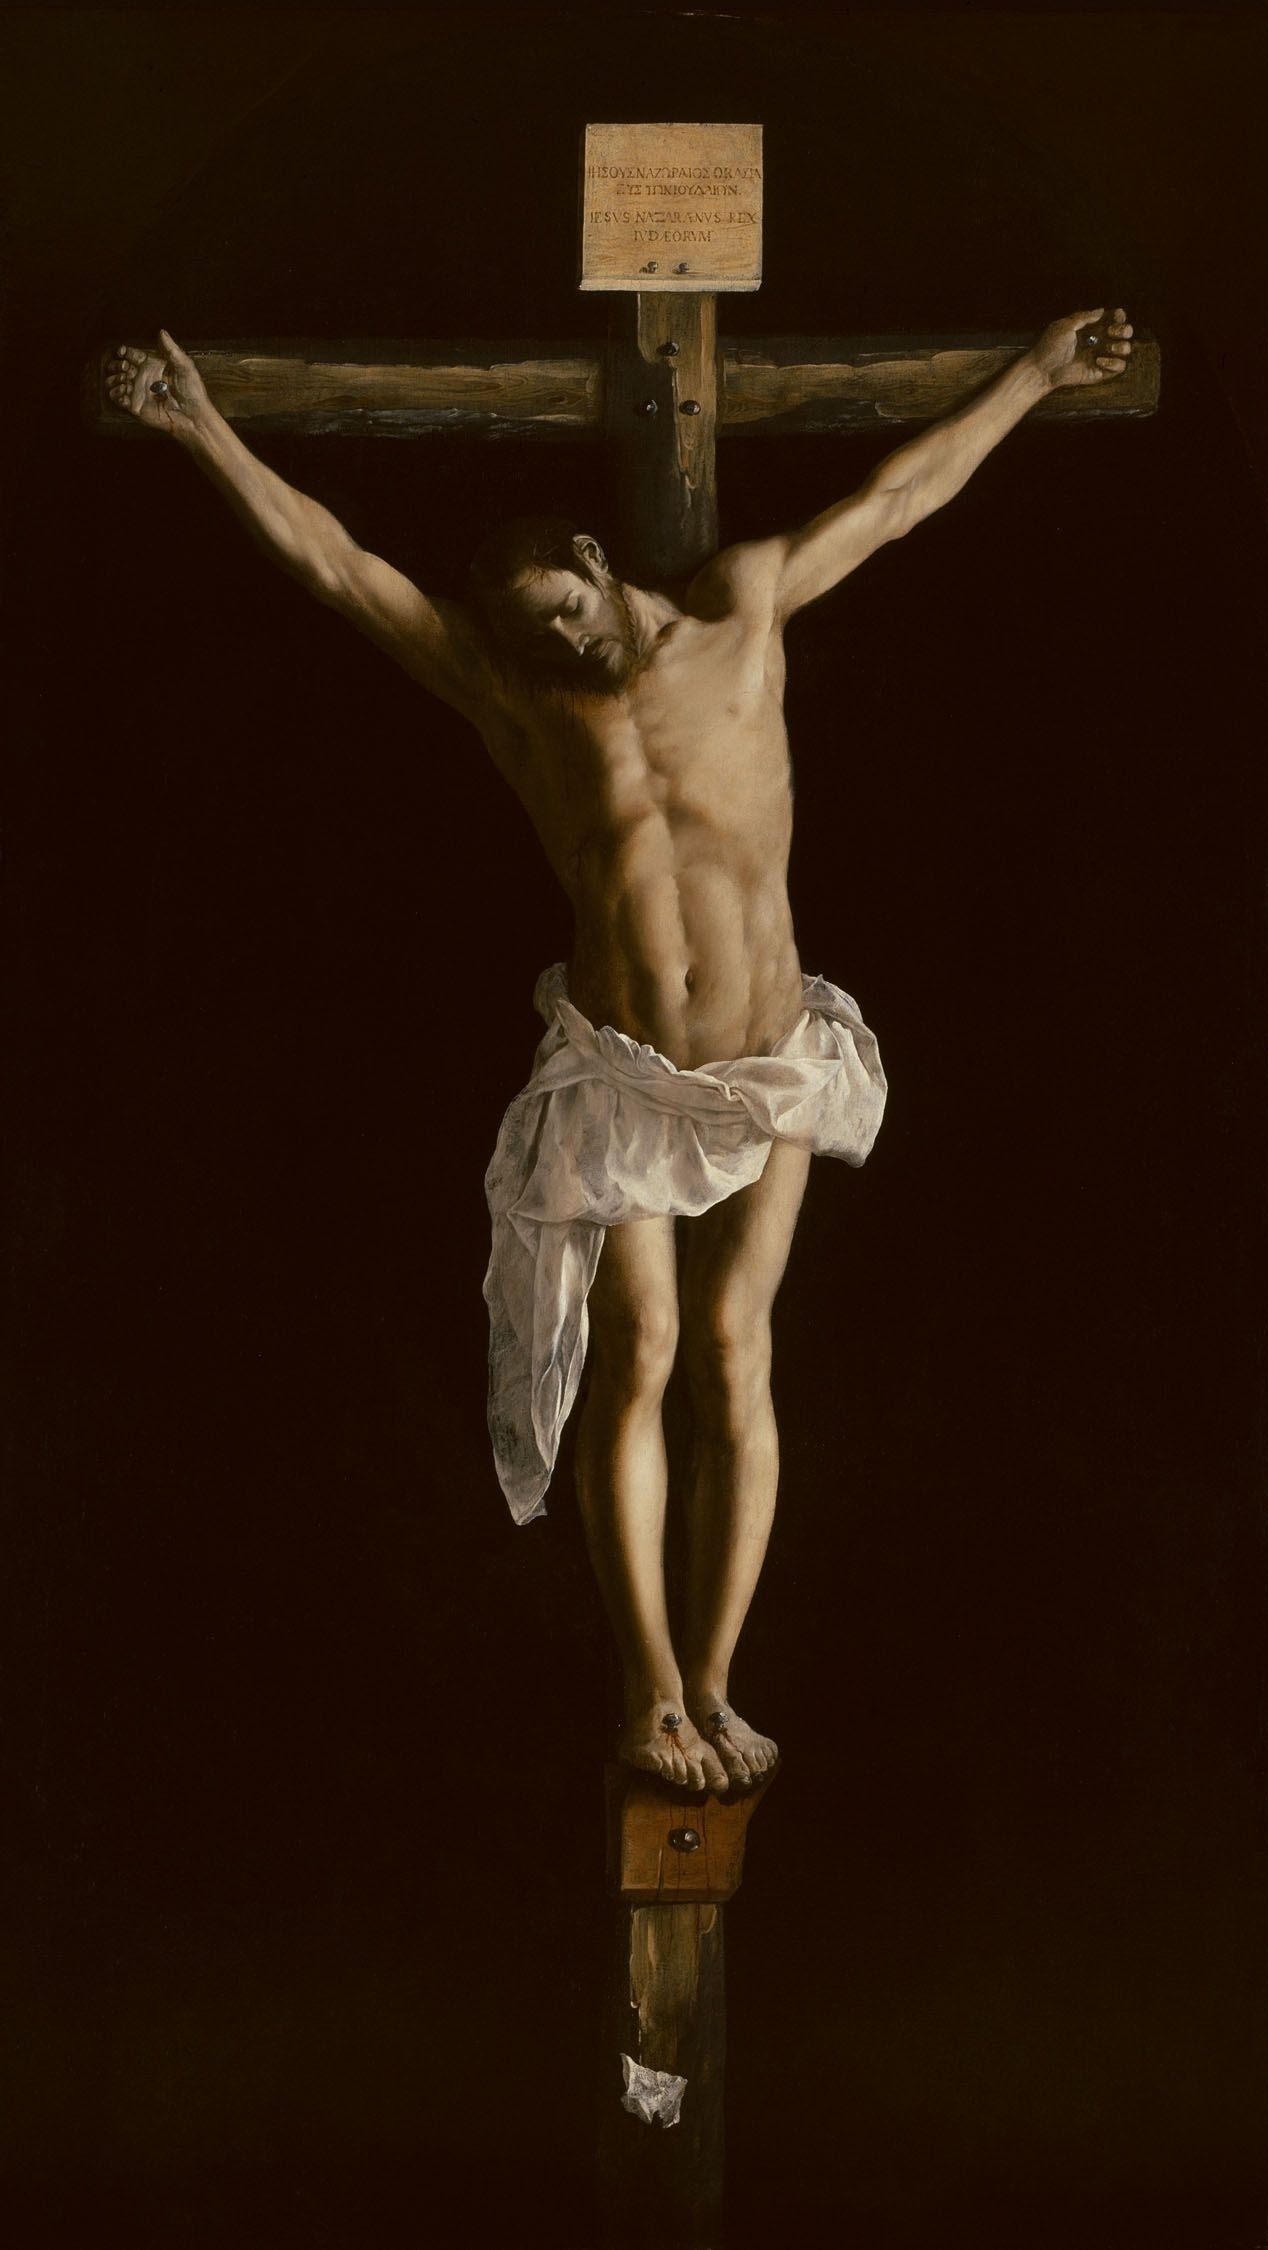 file:francisco de zurbarán - christ on the cross - wga26051